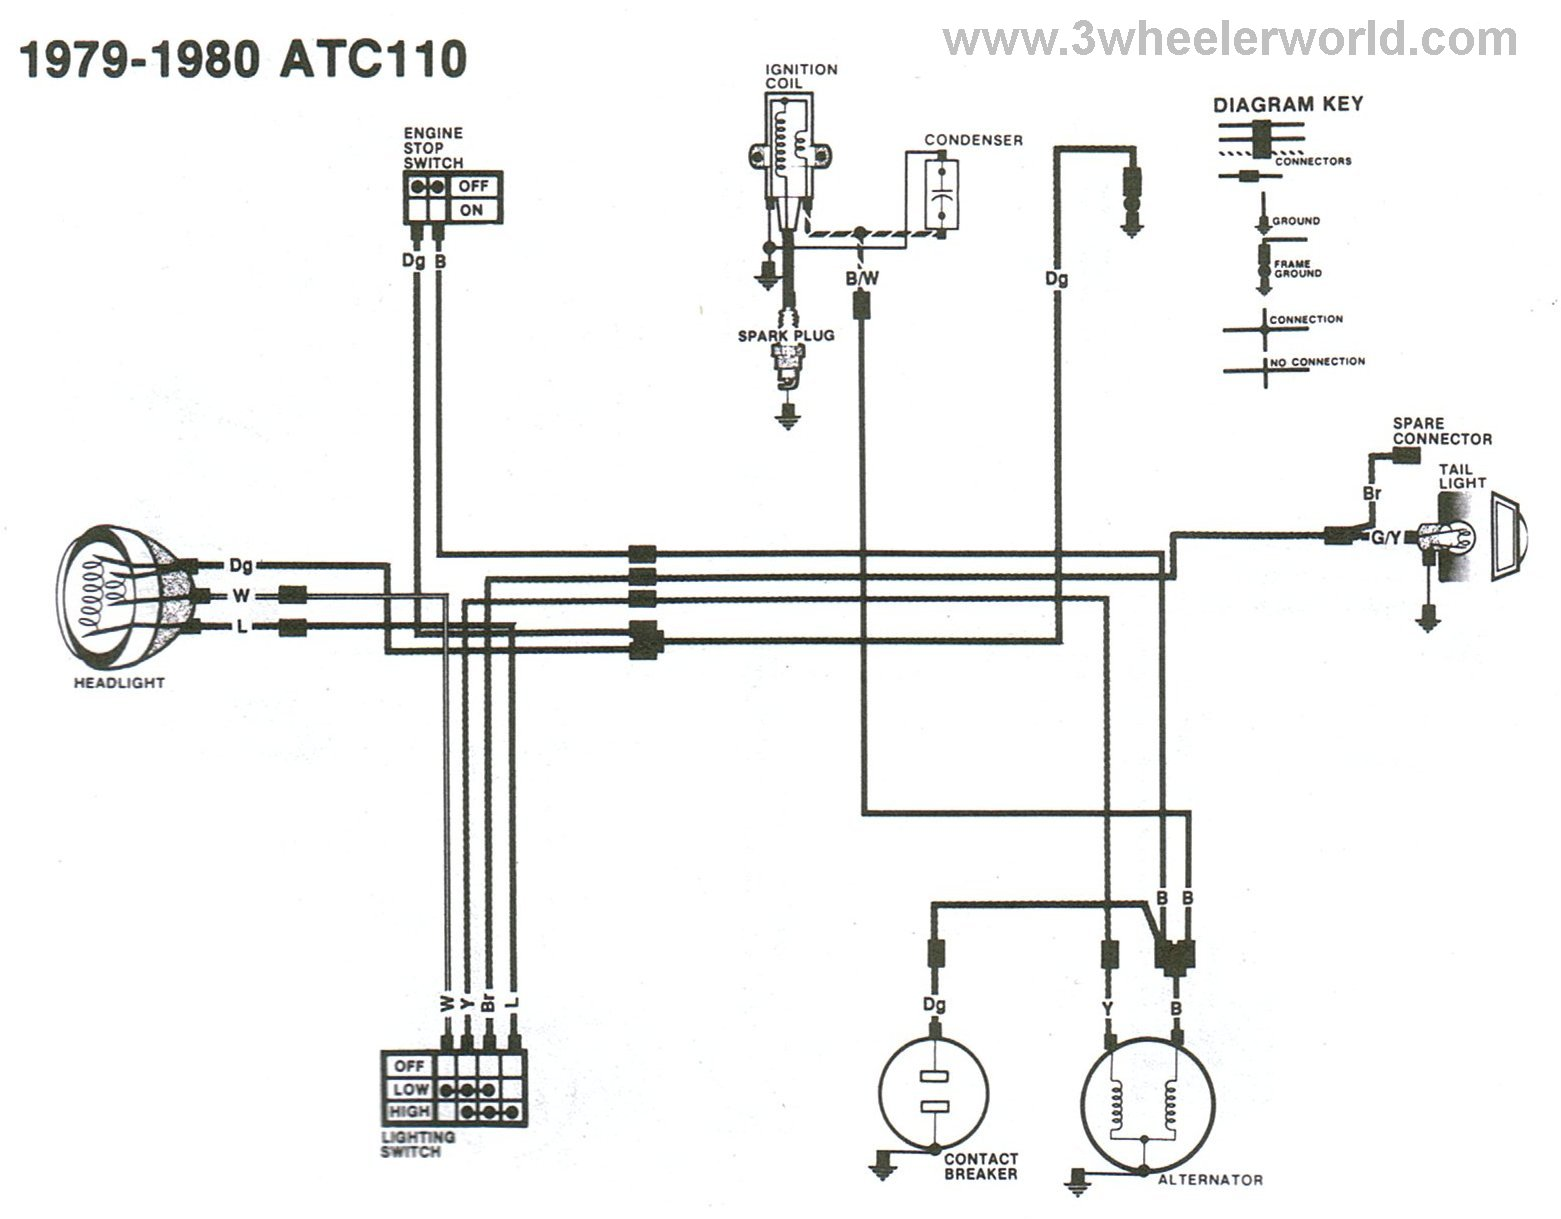 3 Wheeler World Tech Help Honda Wiring Diagrams Automatic Transmission Diagram On 87 Atc110 1979 Thru 1980